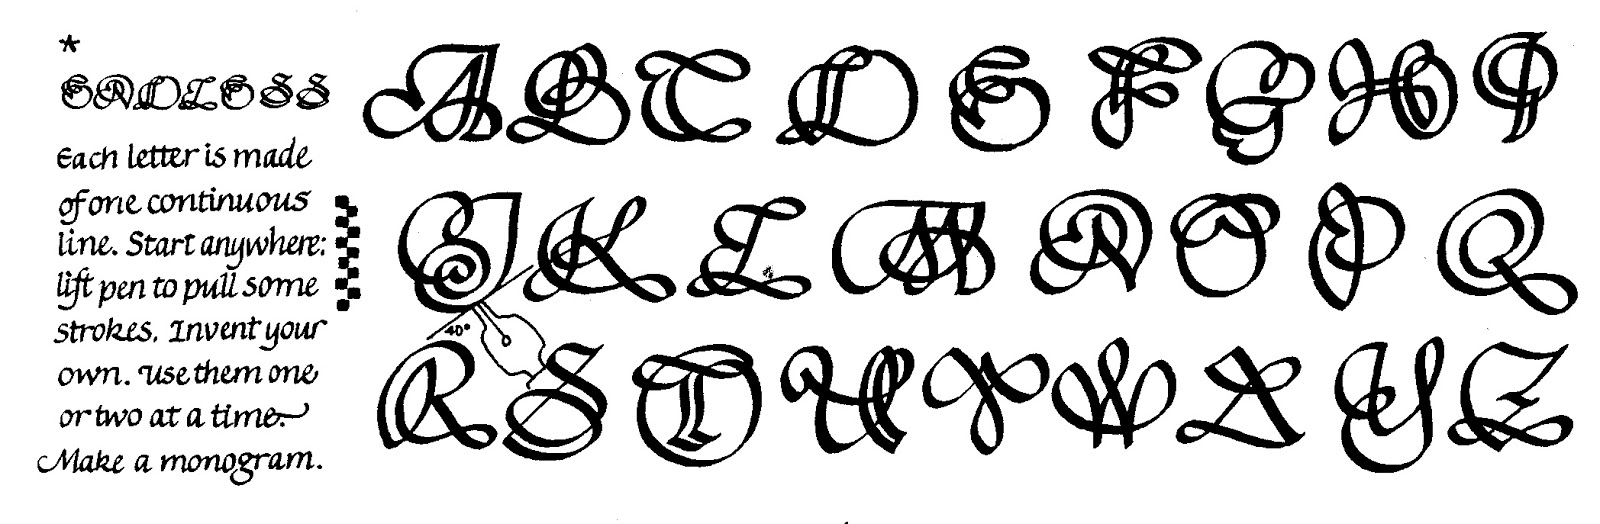 Gothic calligraphy alphabet a z imgkid the